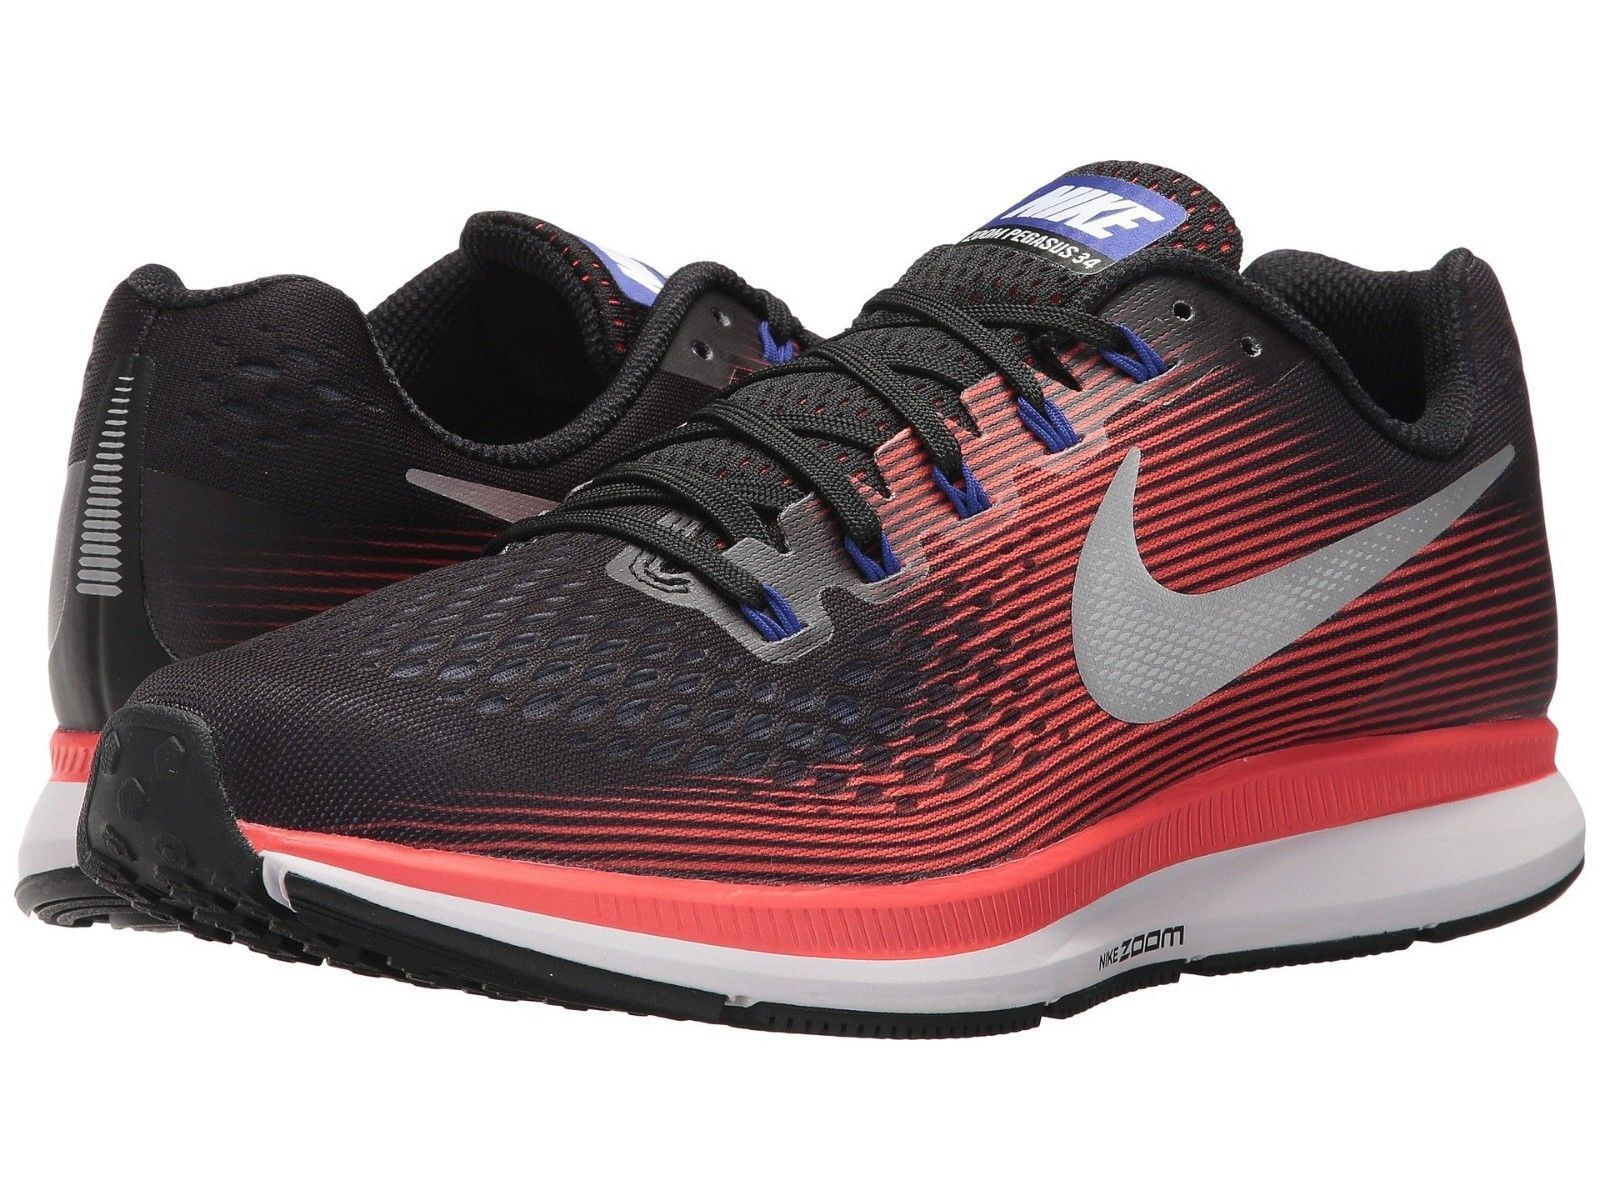 NIB Nike Air Zoom Pegasus 34 Sneakers Shoes Red Red Red Black 898066-006 Mens Sz 9.5 -13 25a610